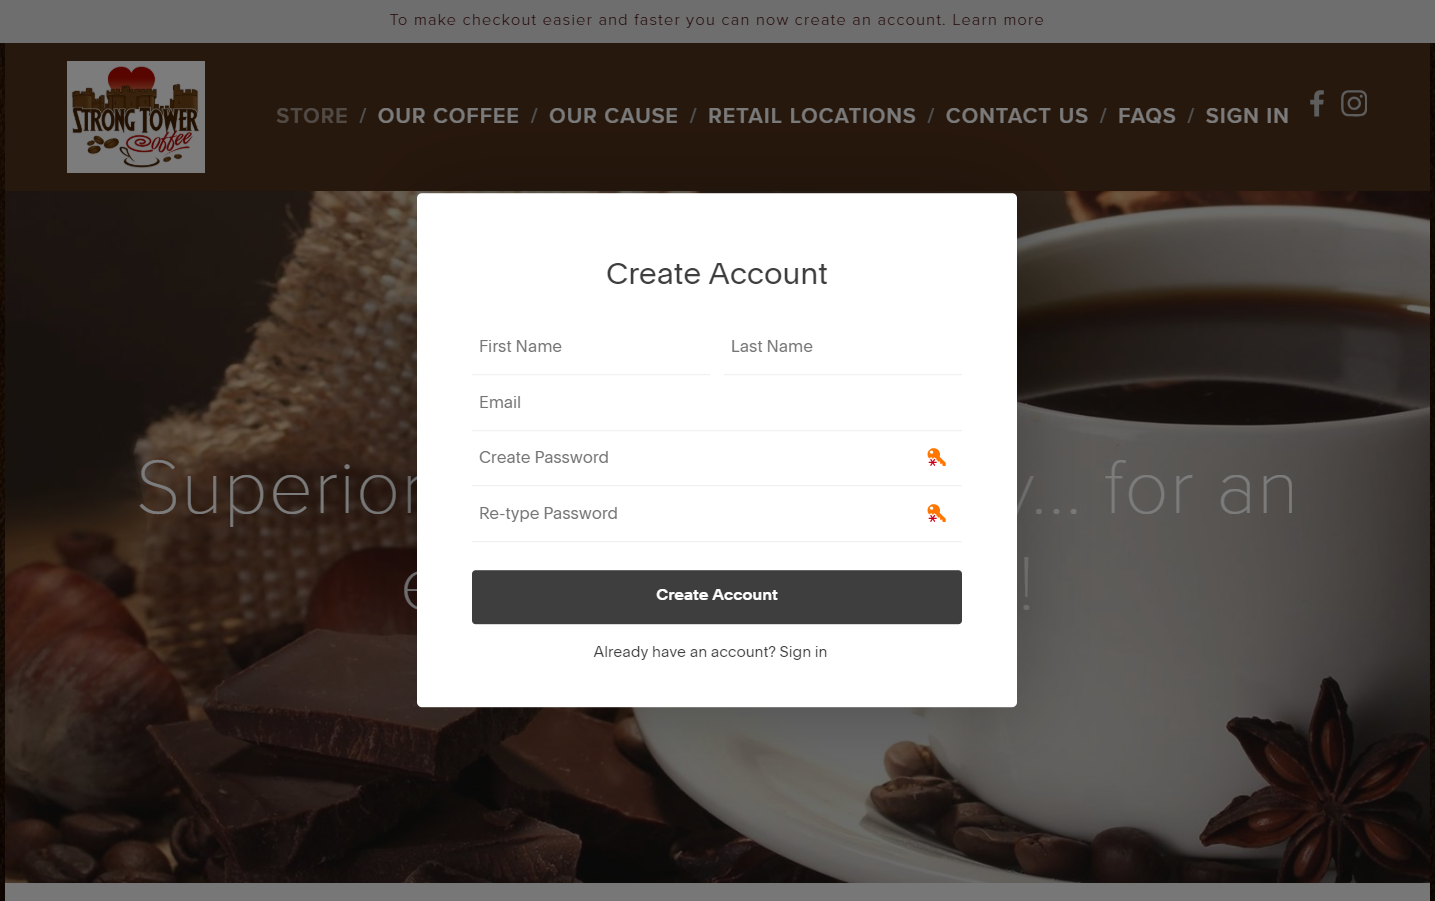 Introducing Customer Accounts on our website for fast, secure checkout.